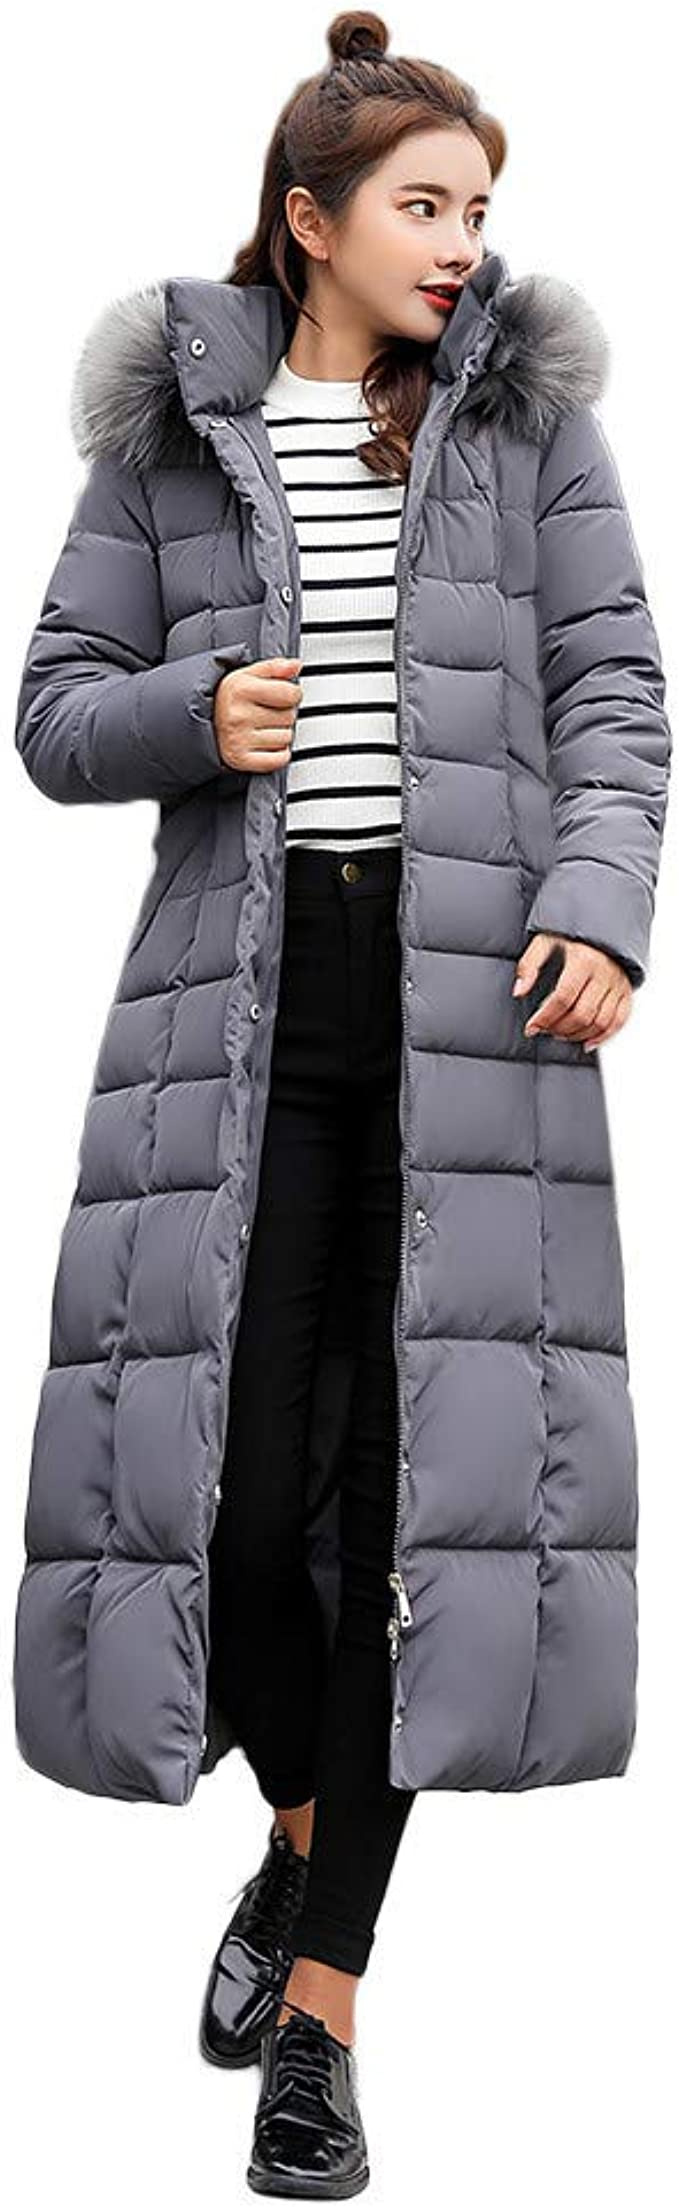 Casual Down Coat Womens Winter Loose Fitting Cocoon Merbau Short Sleeve Zipper Hooded Cape Down Coat With Pockets Winter Long Coat Jacket